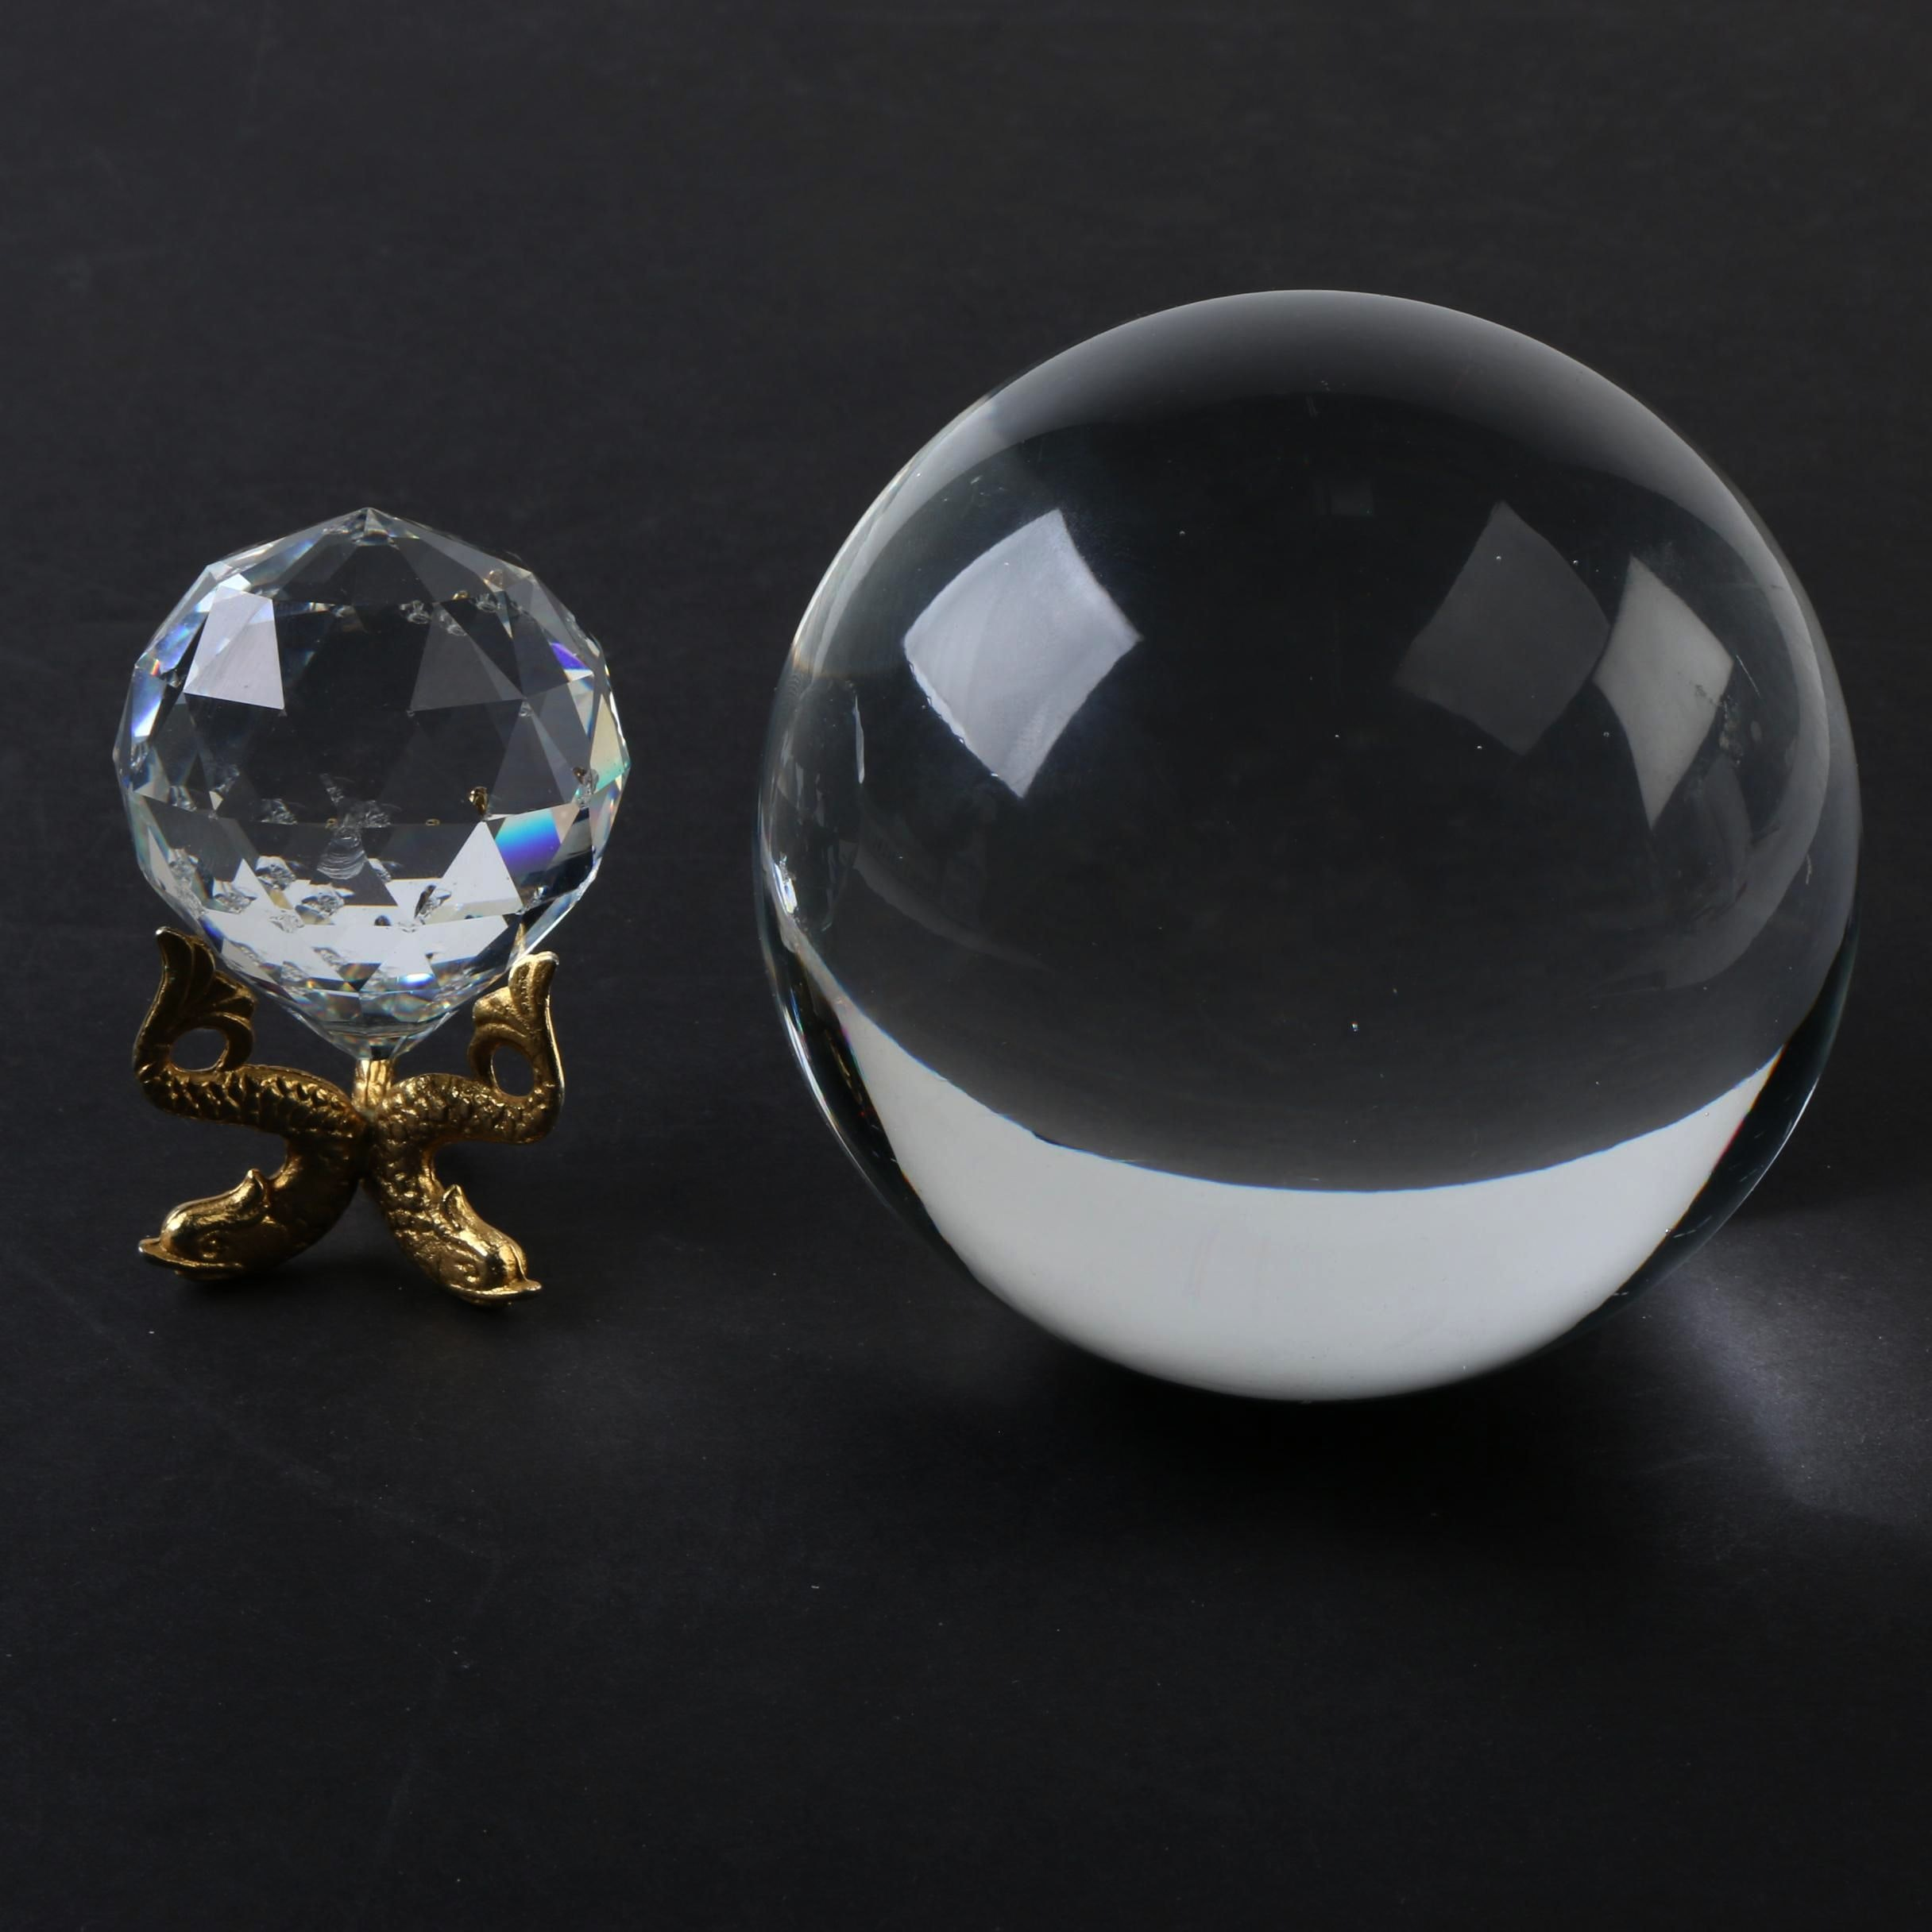 Spherical Glass Decor and Brass Stand